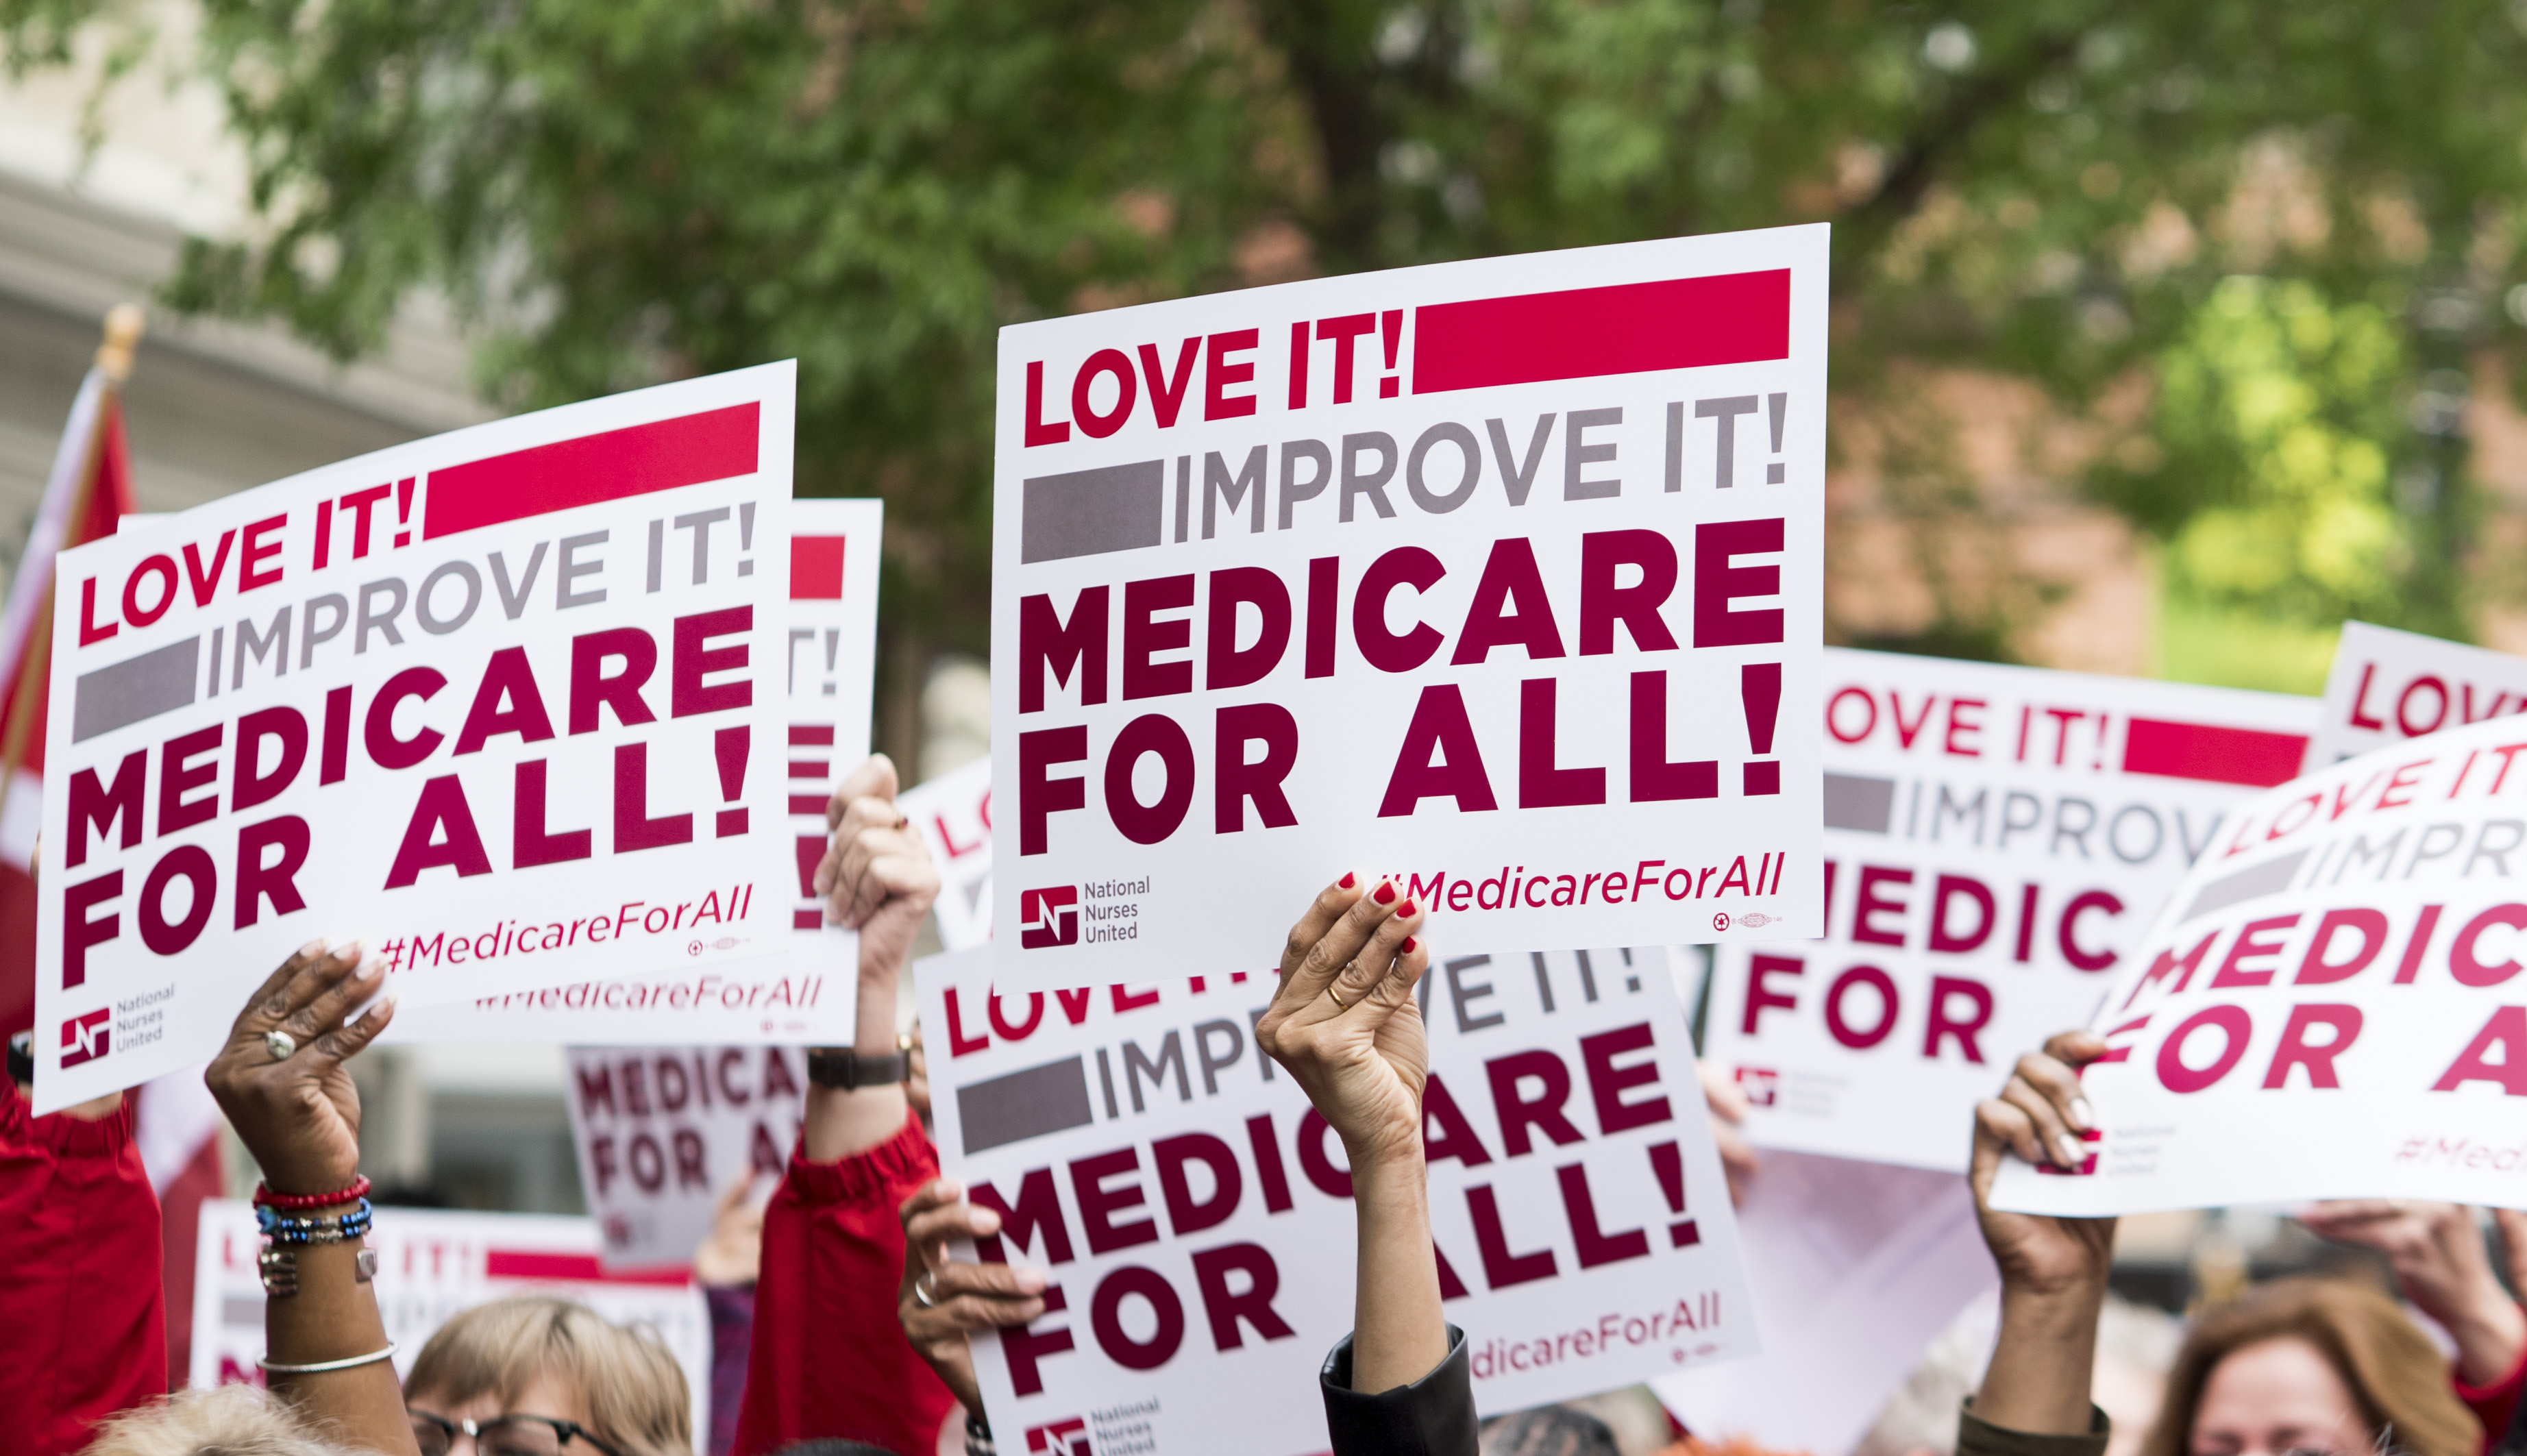 Members of National Nurses United union members wave  Medicare for All  signs during  a rally in front of the Pharmaceutical Research and Manufacturers of America in Washington calling for  Medicare for All  on Monday, April 29, 2019.